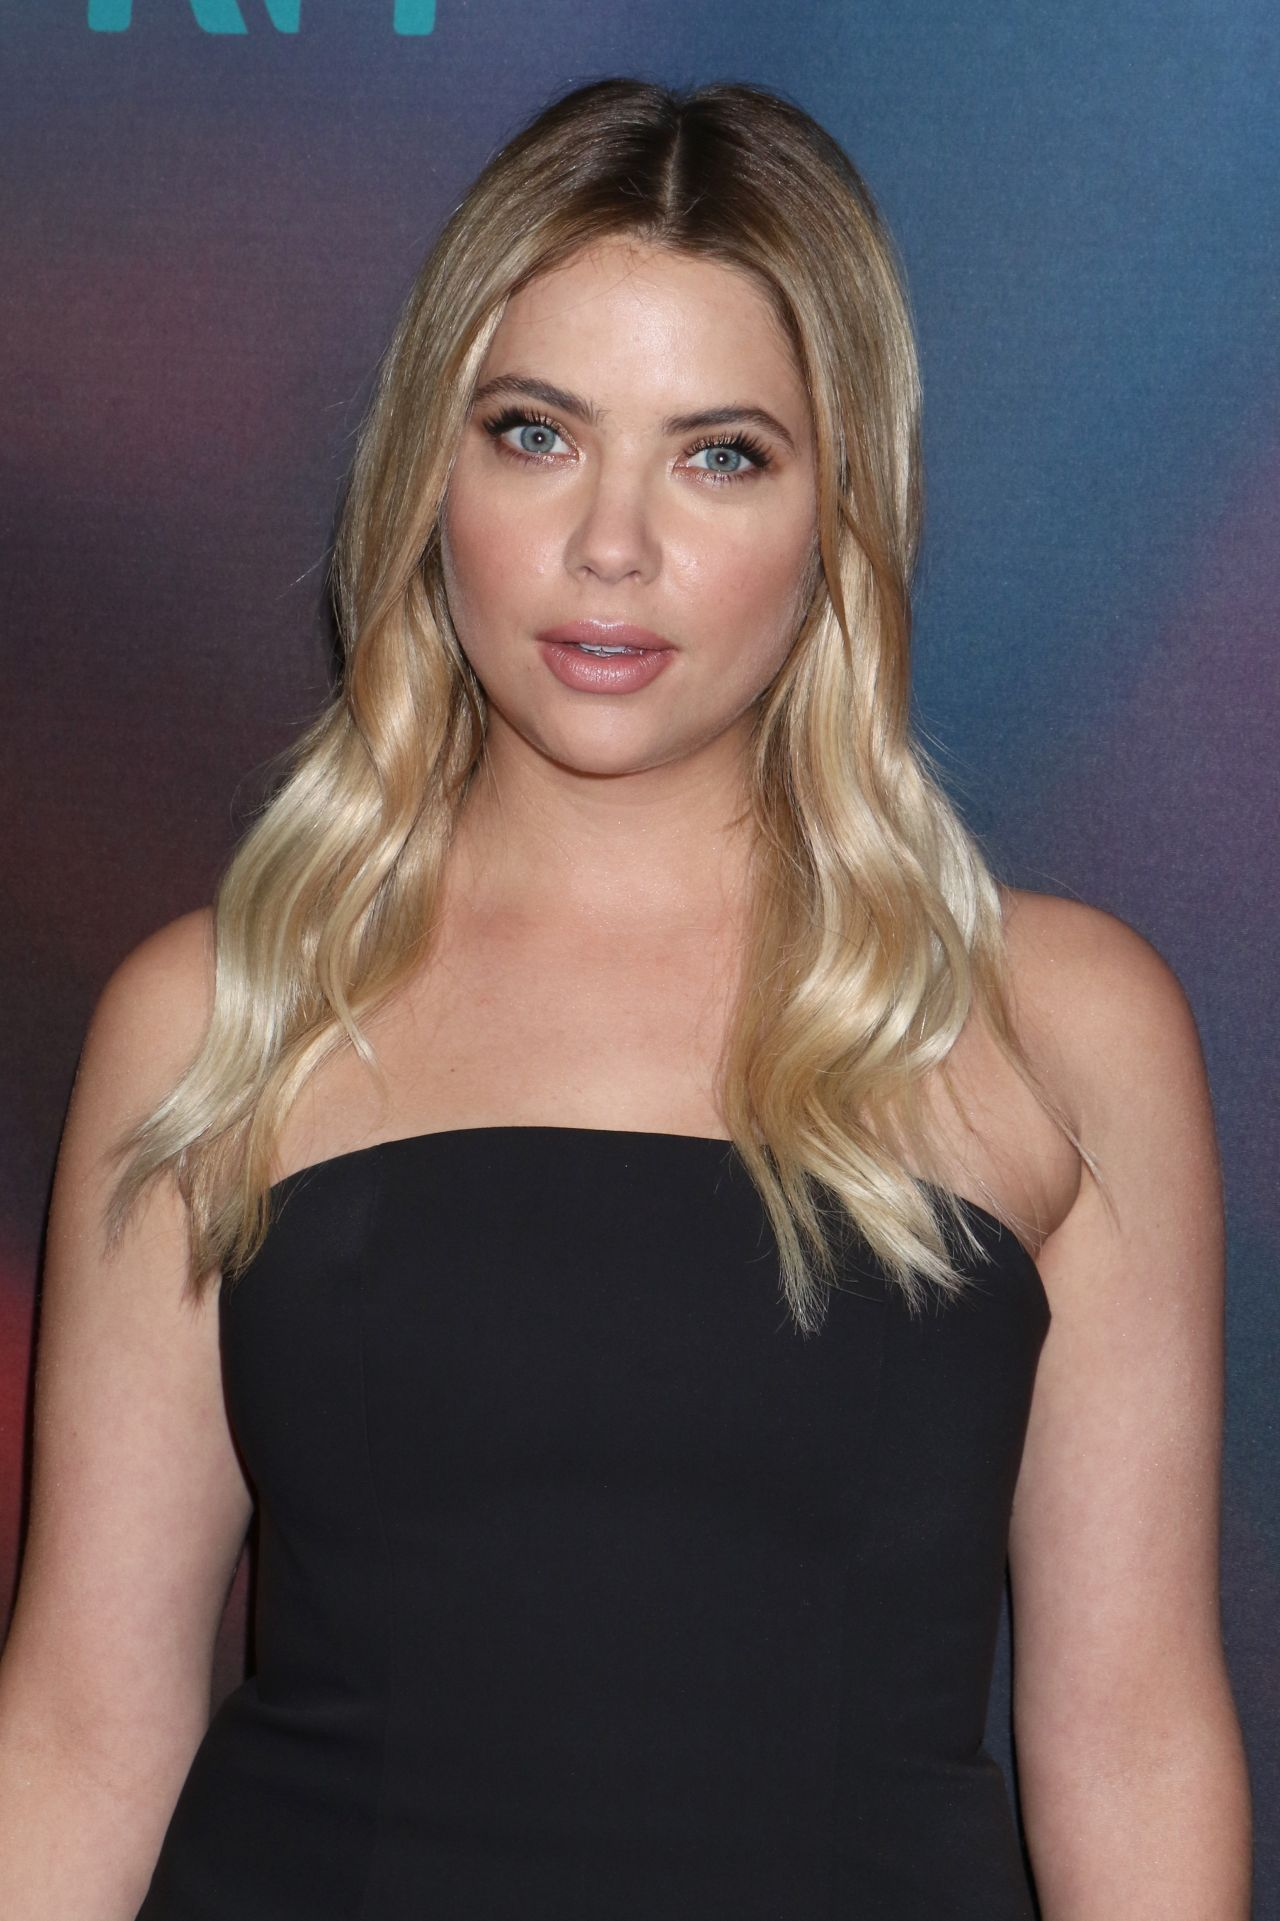 ashley benson - photo #49